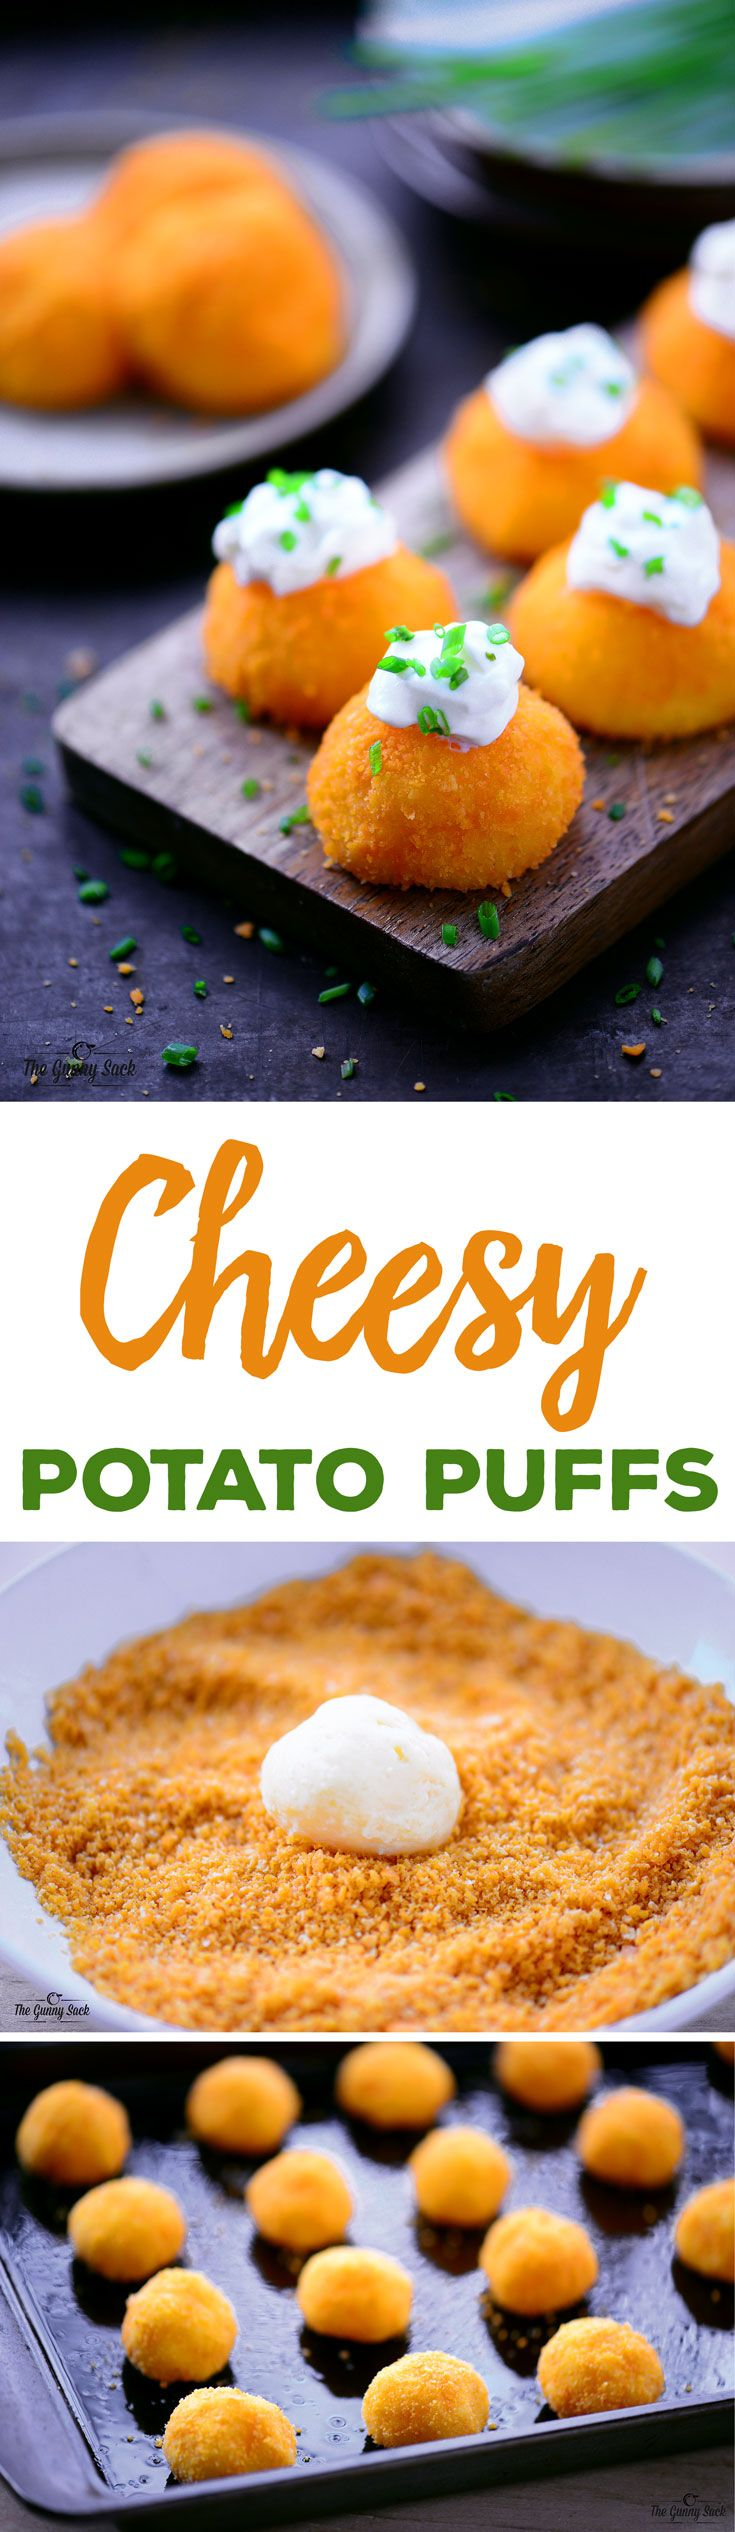 This Cheesy Potato Puffs recipe is a great holiday side dish or party appetizer. Crunchy cheese crackers coat these delicious, cheesy puffs of mashed potatoes.  #ad